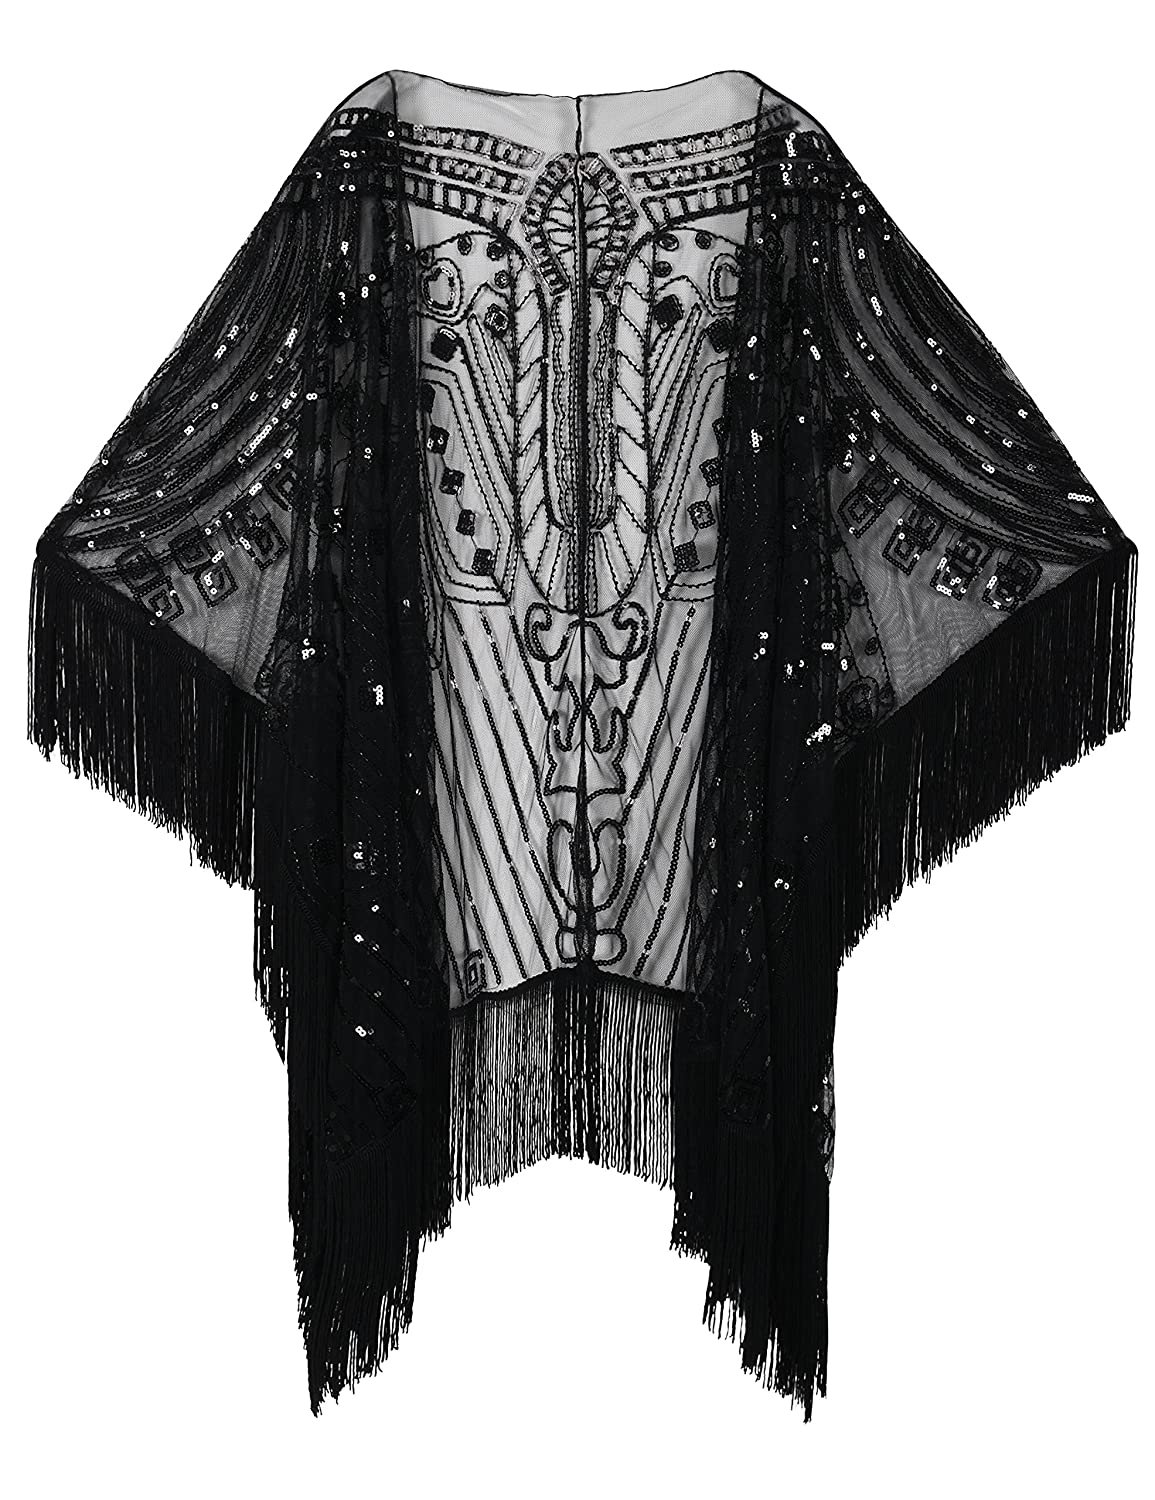 1920s Shawls, Scarves and Evening Jacket Tips PrettyGuide Womens Evening Wrap Beaded 1920s Shawl Fringed Oversized Cover up $35.99 AT vintagedancer.com